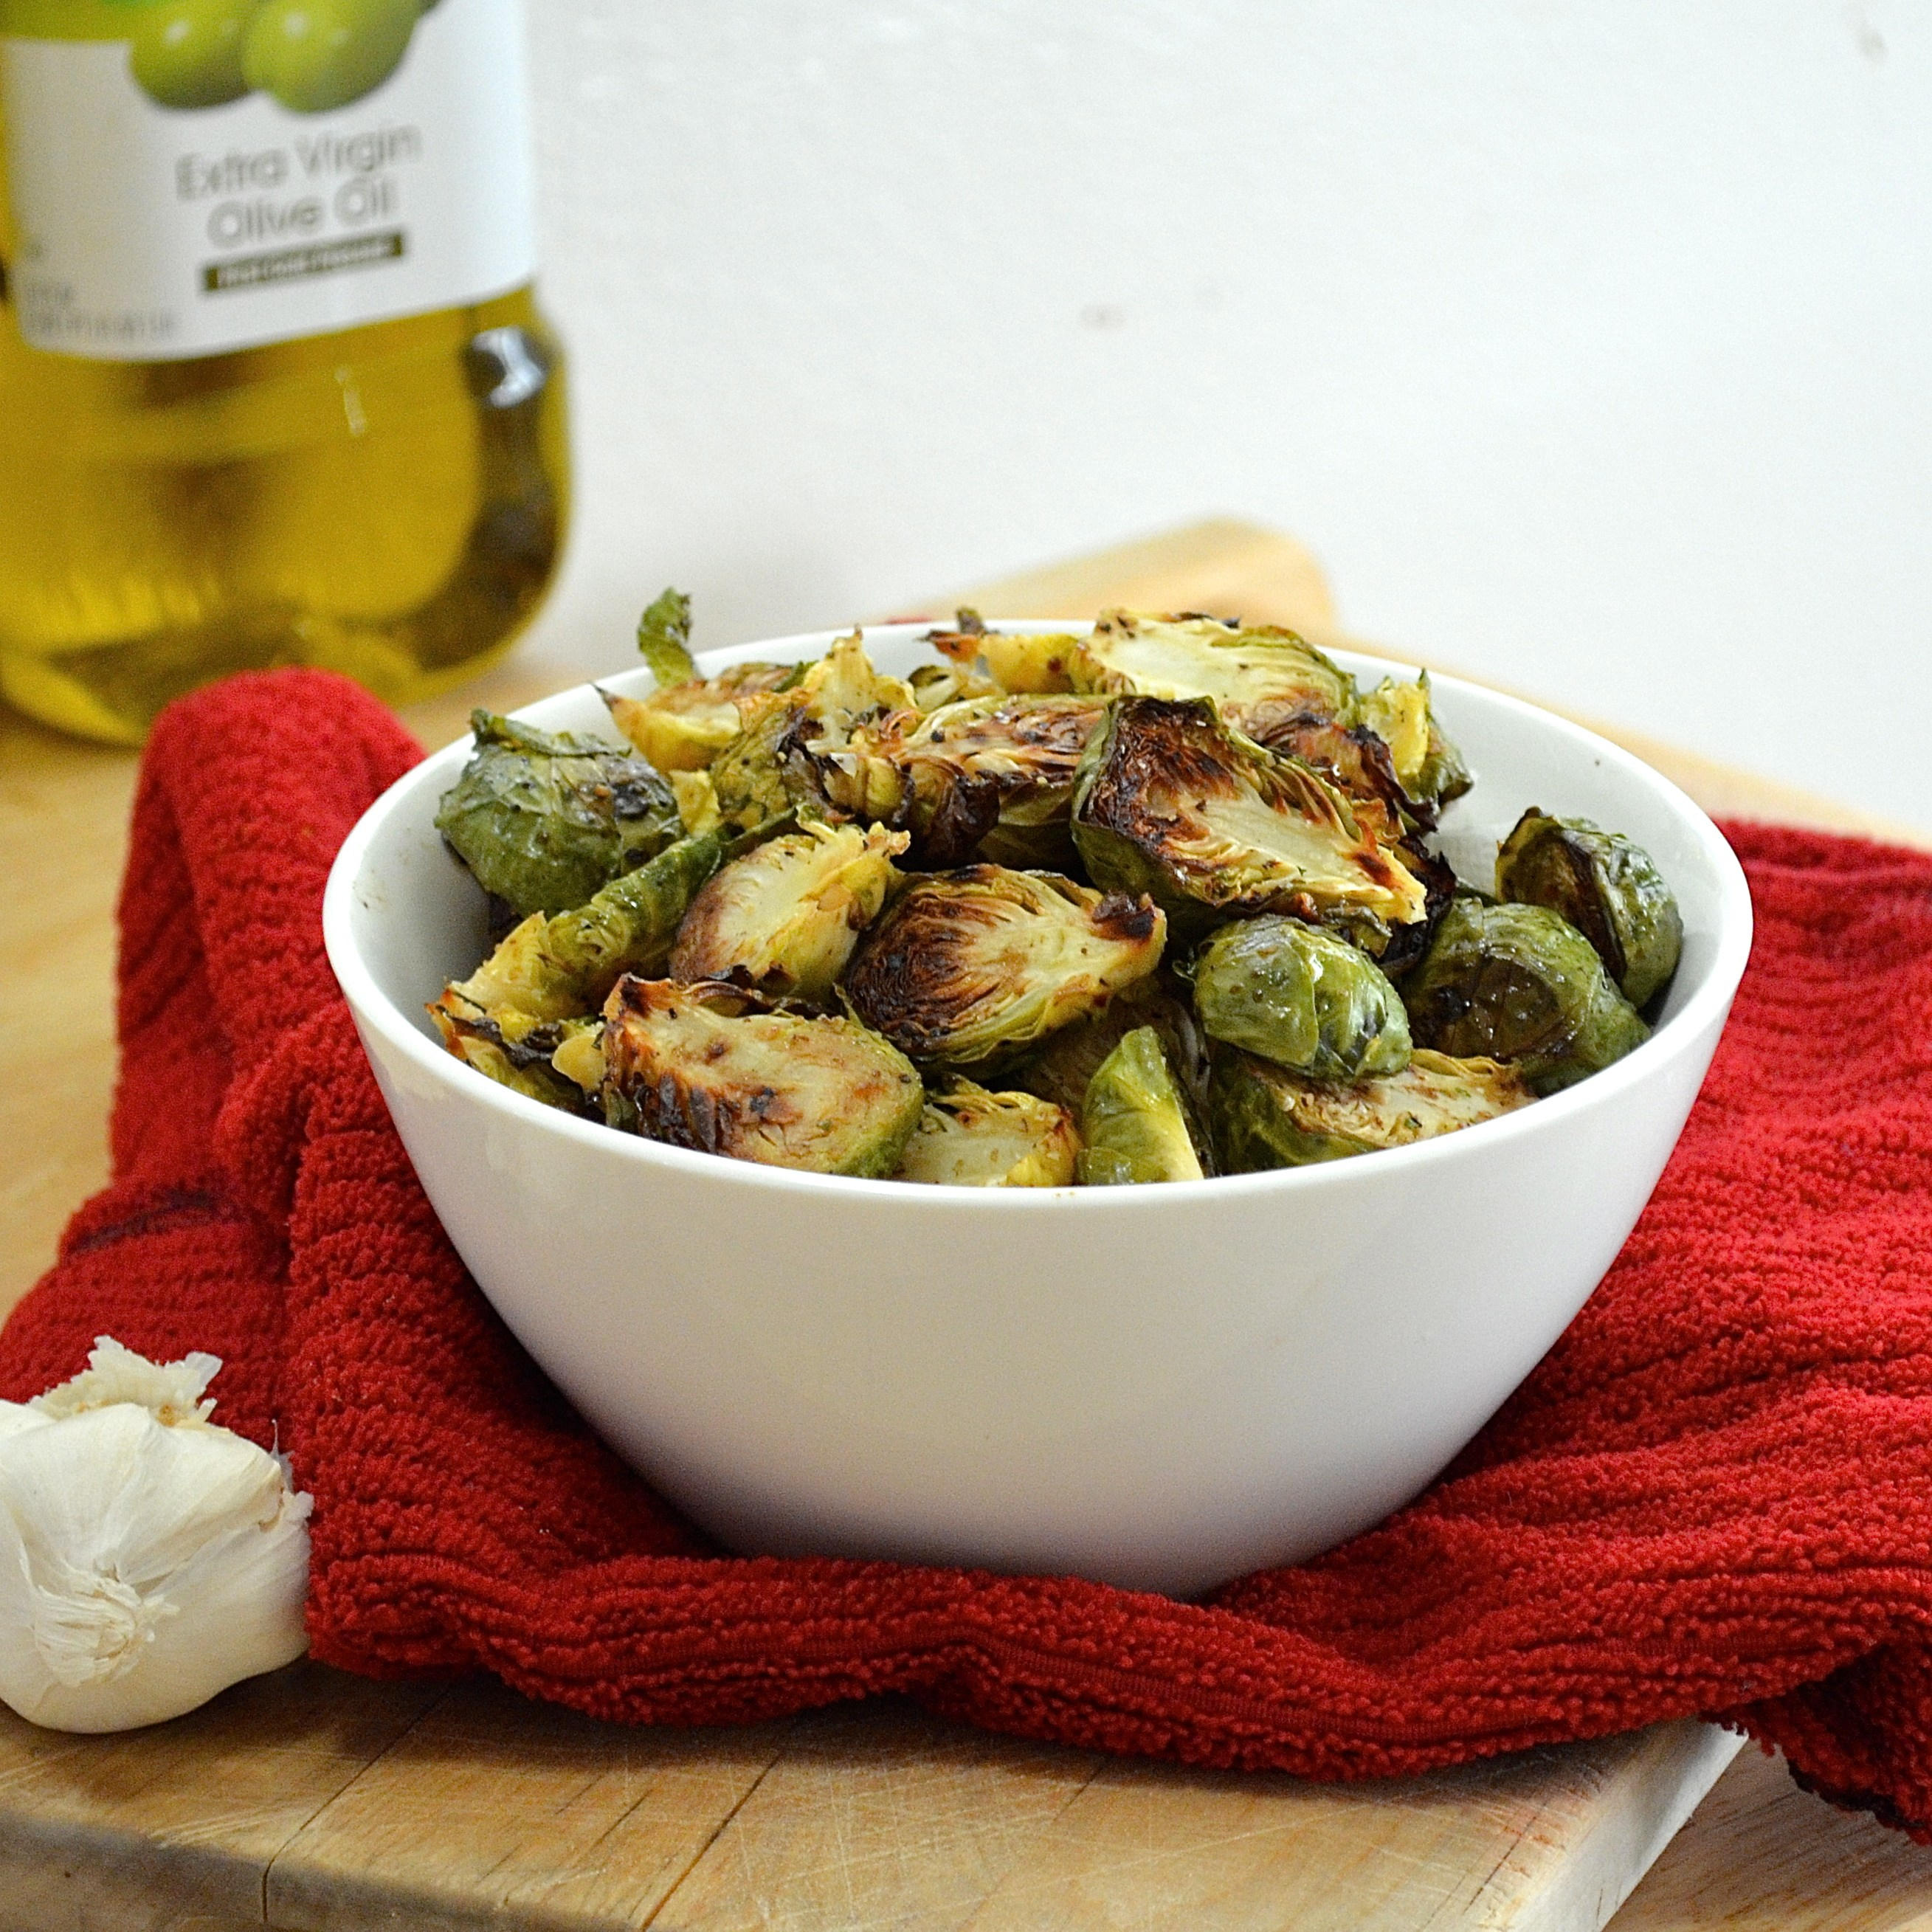 Fabulously-delicious-balsamic-and-garlic-roasted-brussel-sprouts-Theyll-turn-anyone-into-a-vegetable-lover-